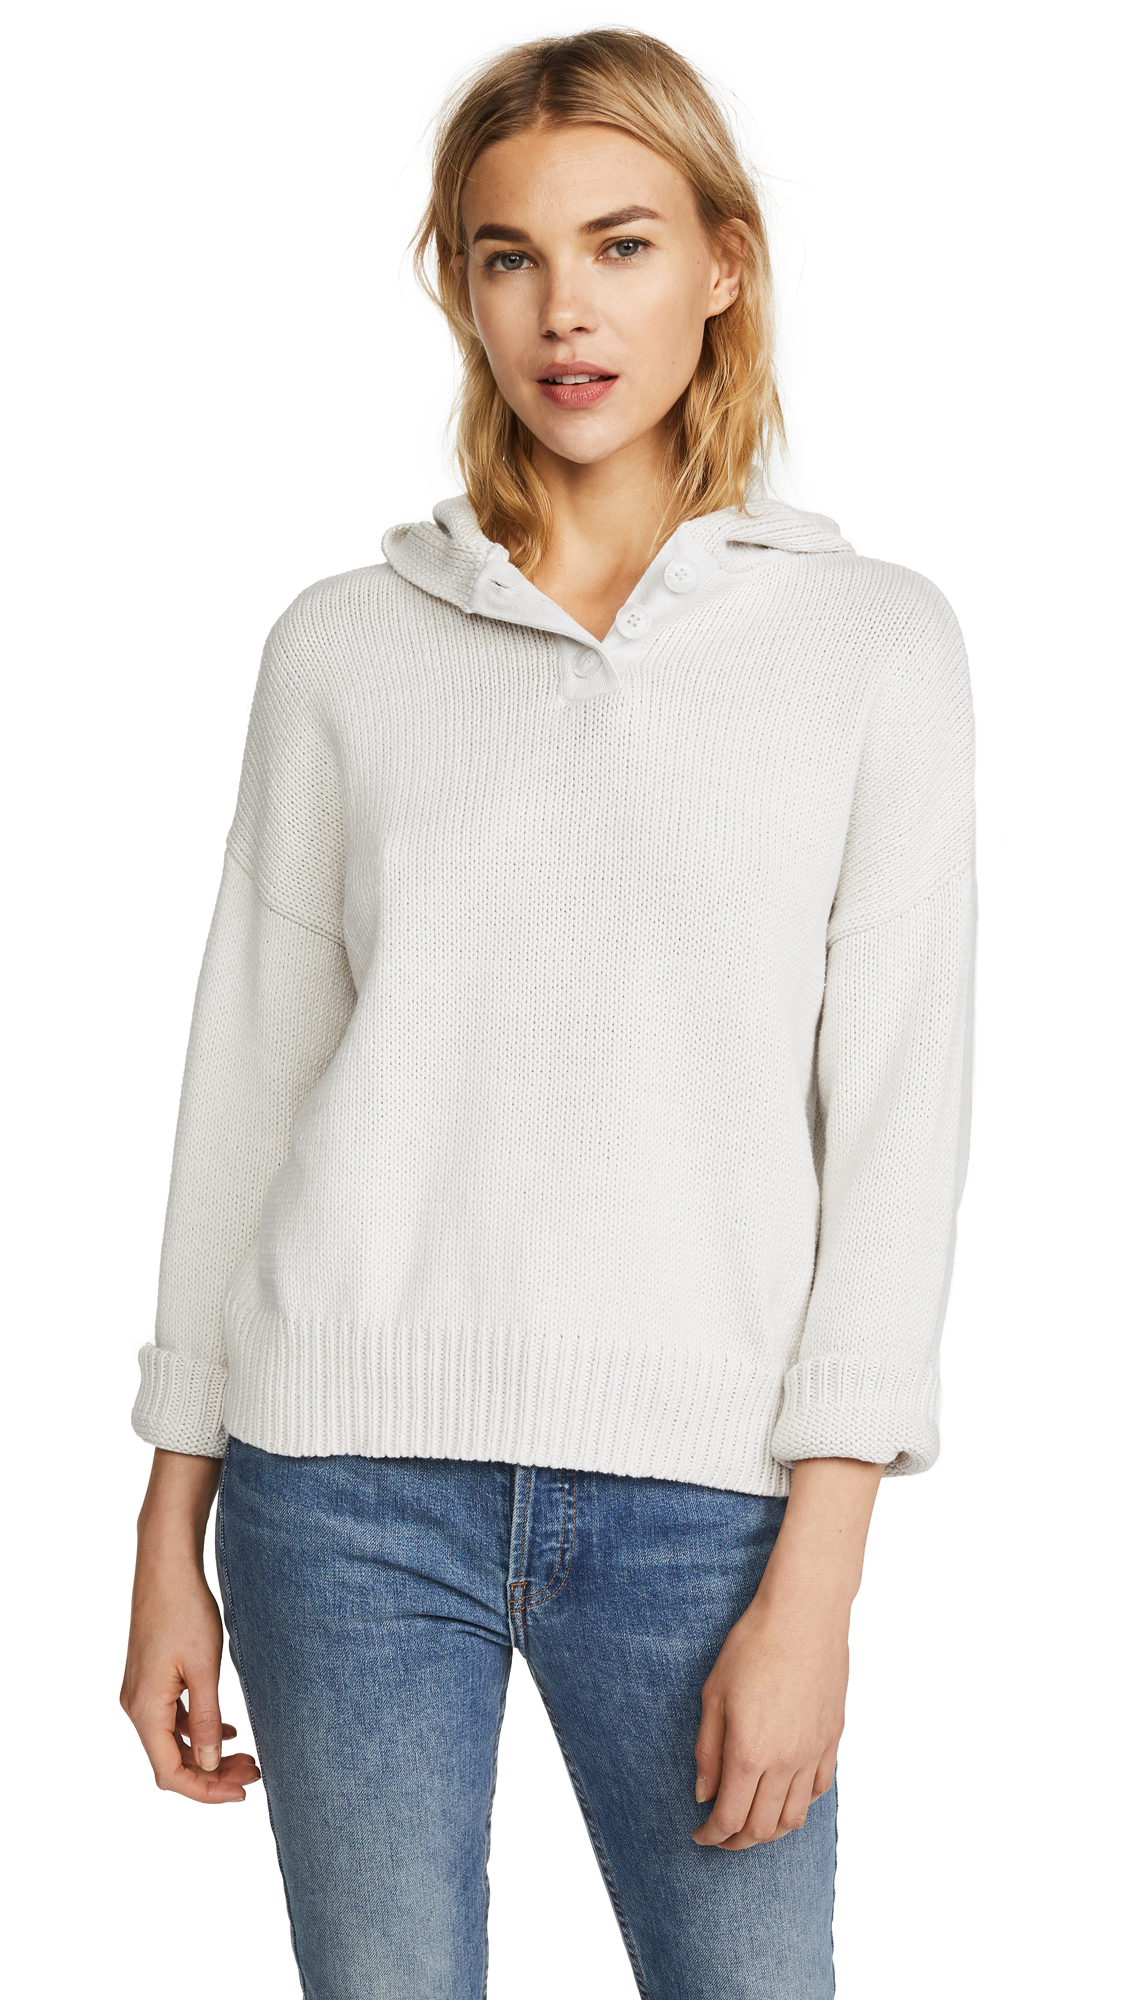 360 SWEATER Lillian Hooded Sweater